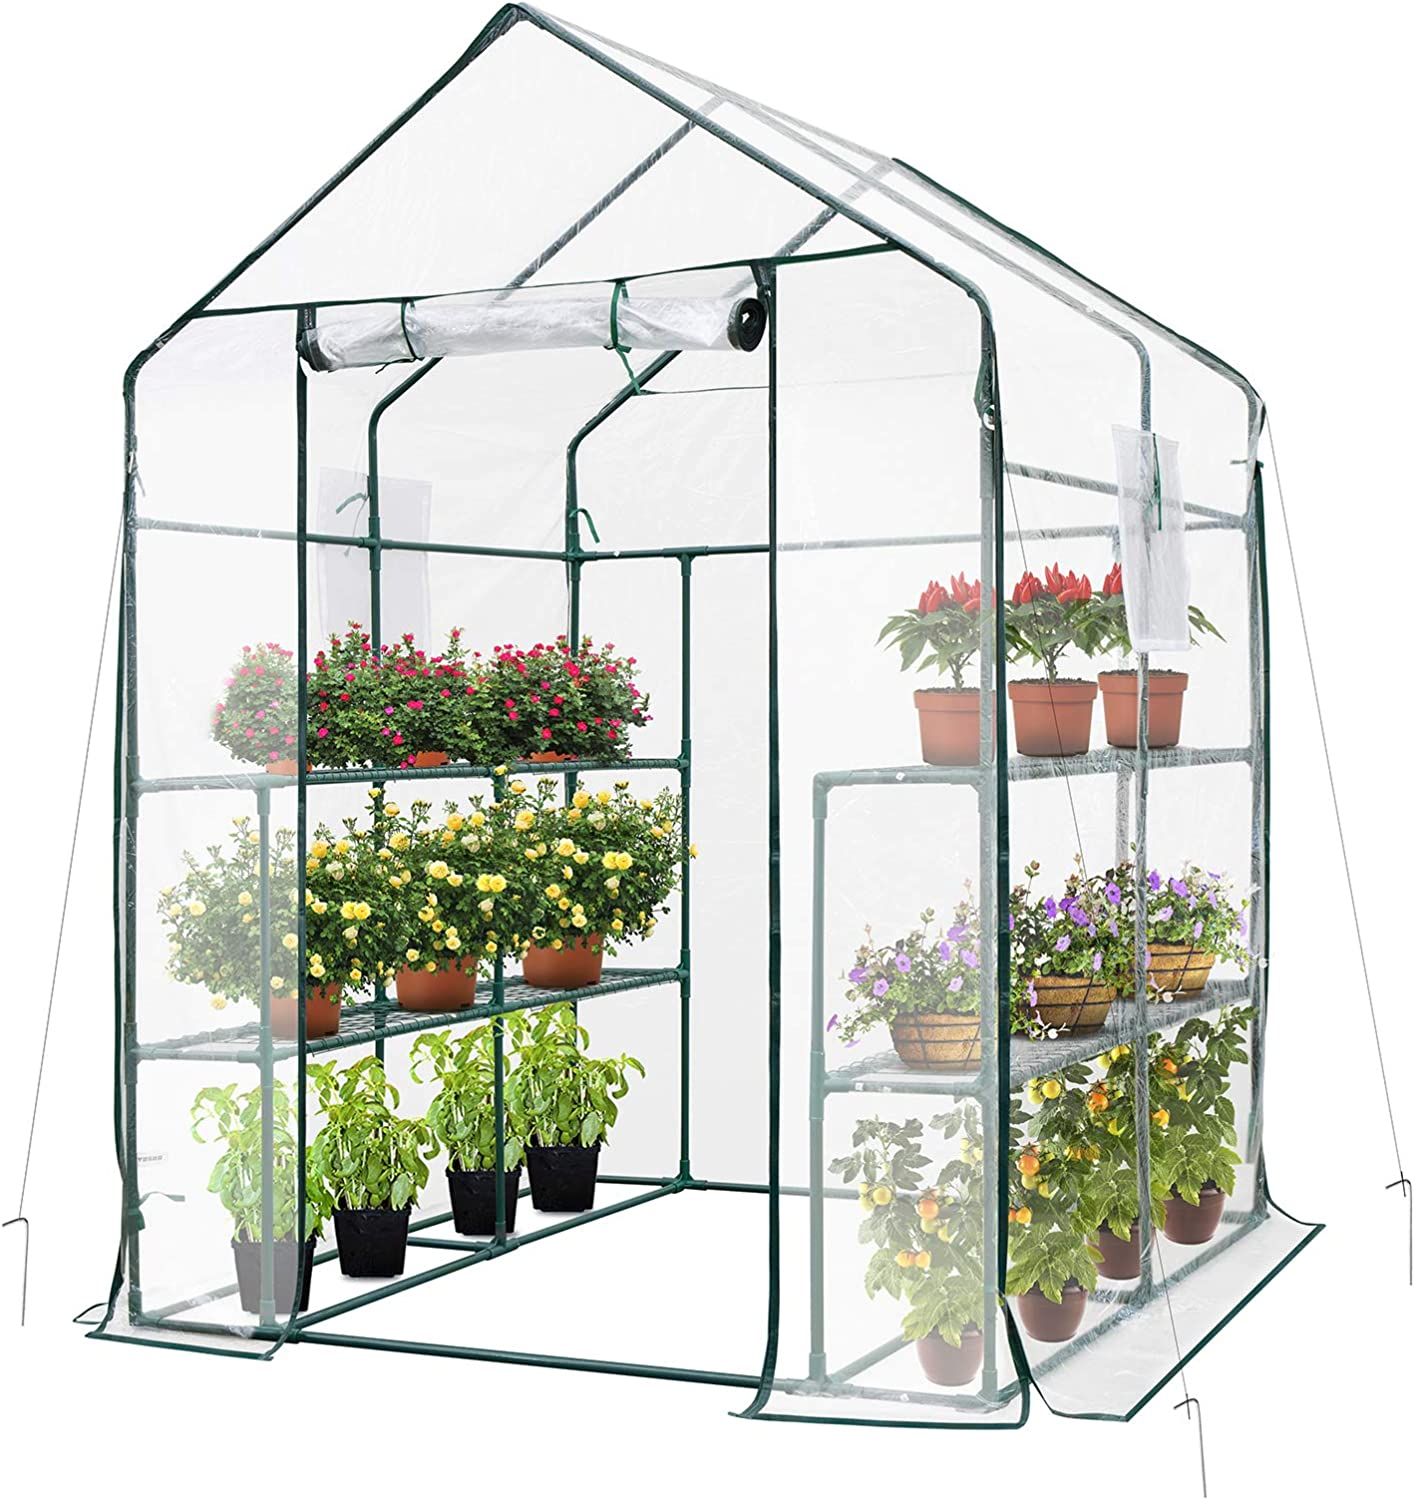 VIVOSUN 57x57x77-Inch Transparent Walk-in Green House with Window and Anchor Plant Garden Hot House 2 Tiers 8 Shelves